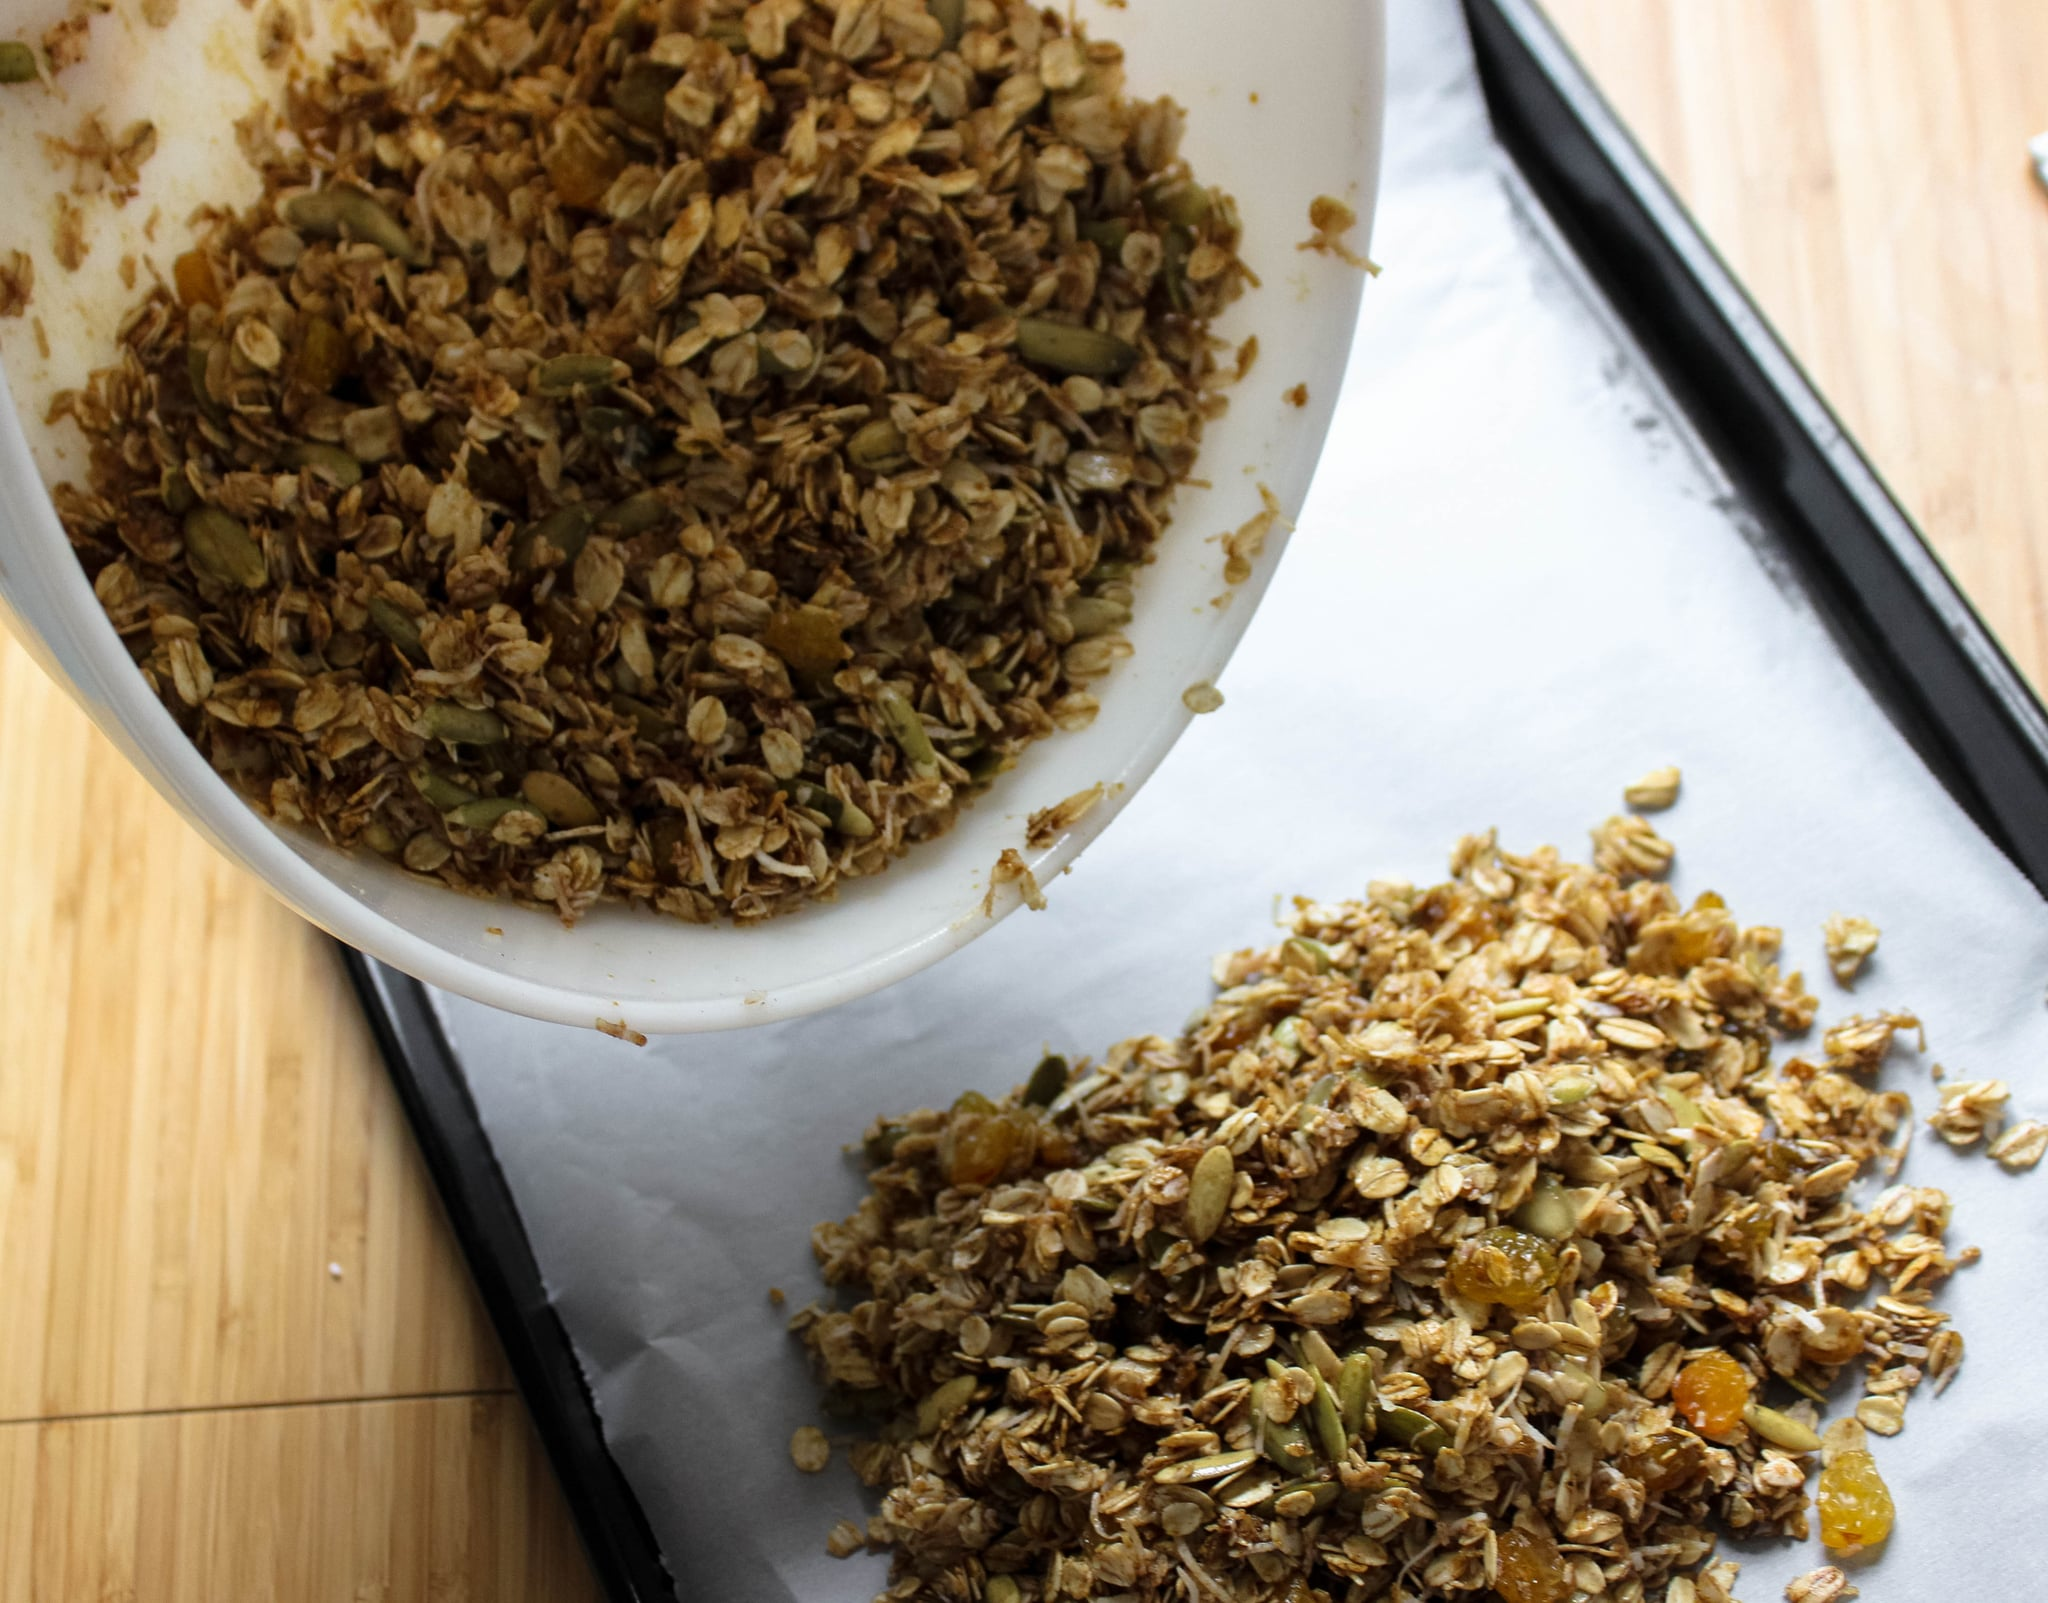 This Healthy Ginger-Molasses Granola Will Keep You Full and Focused